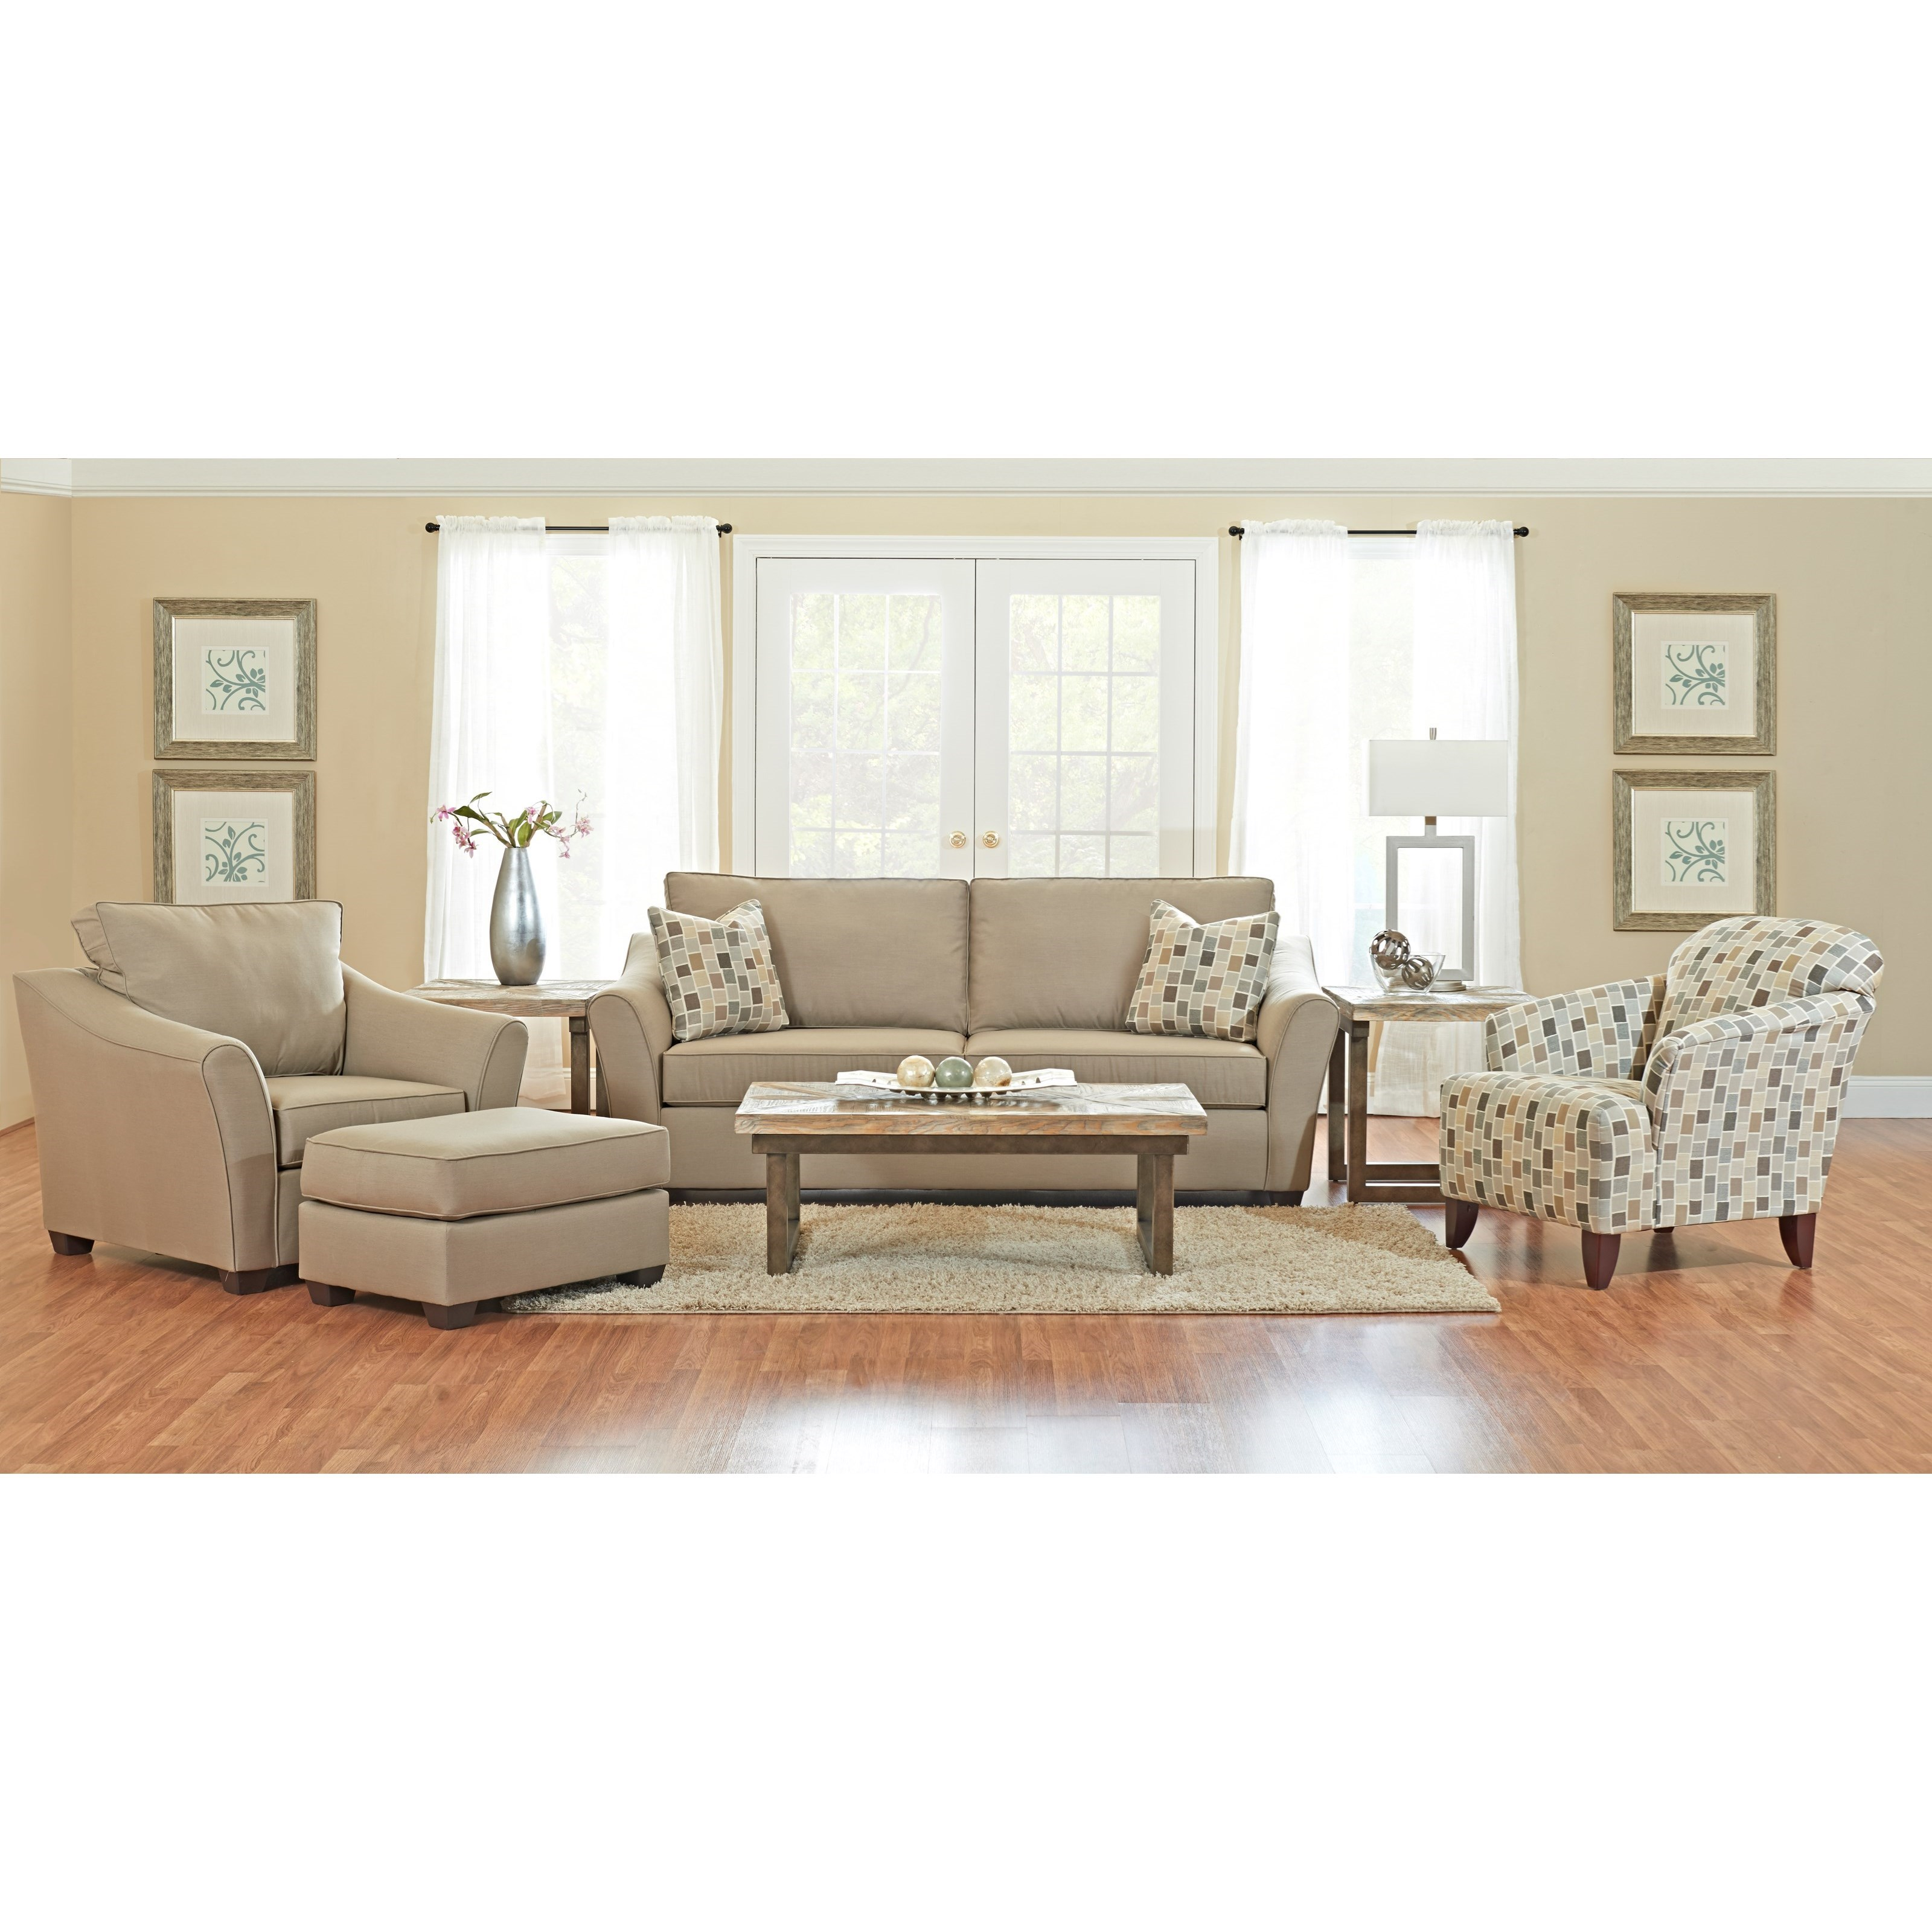 Klaussner Linville Contemporary Sofa With Flared Arms Johnny Janosik Sofas